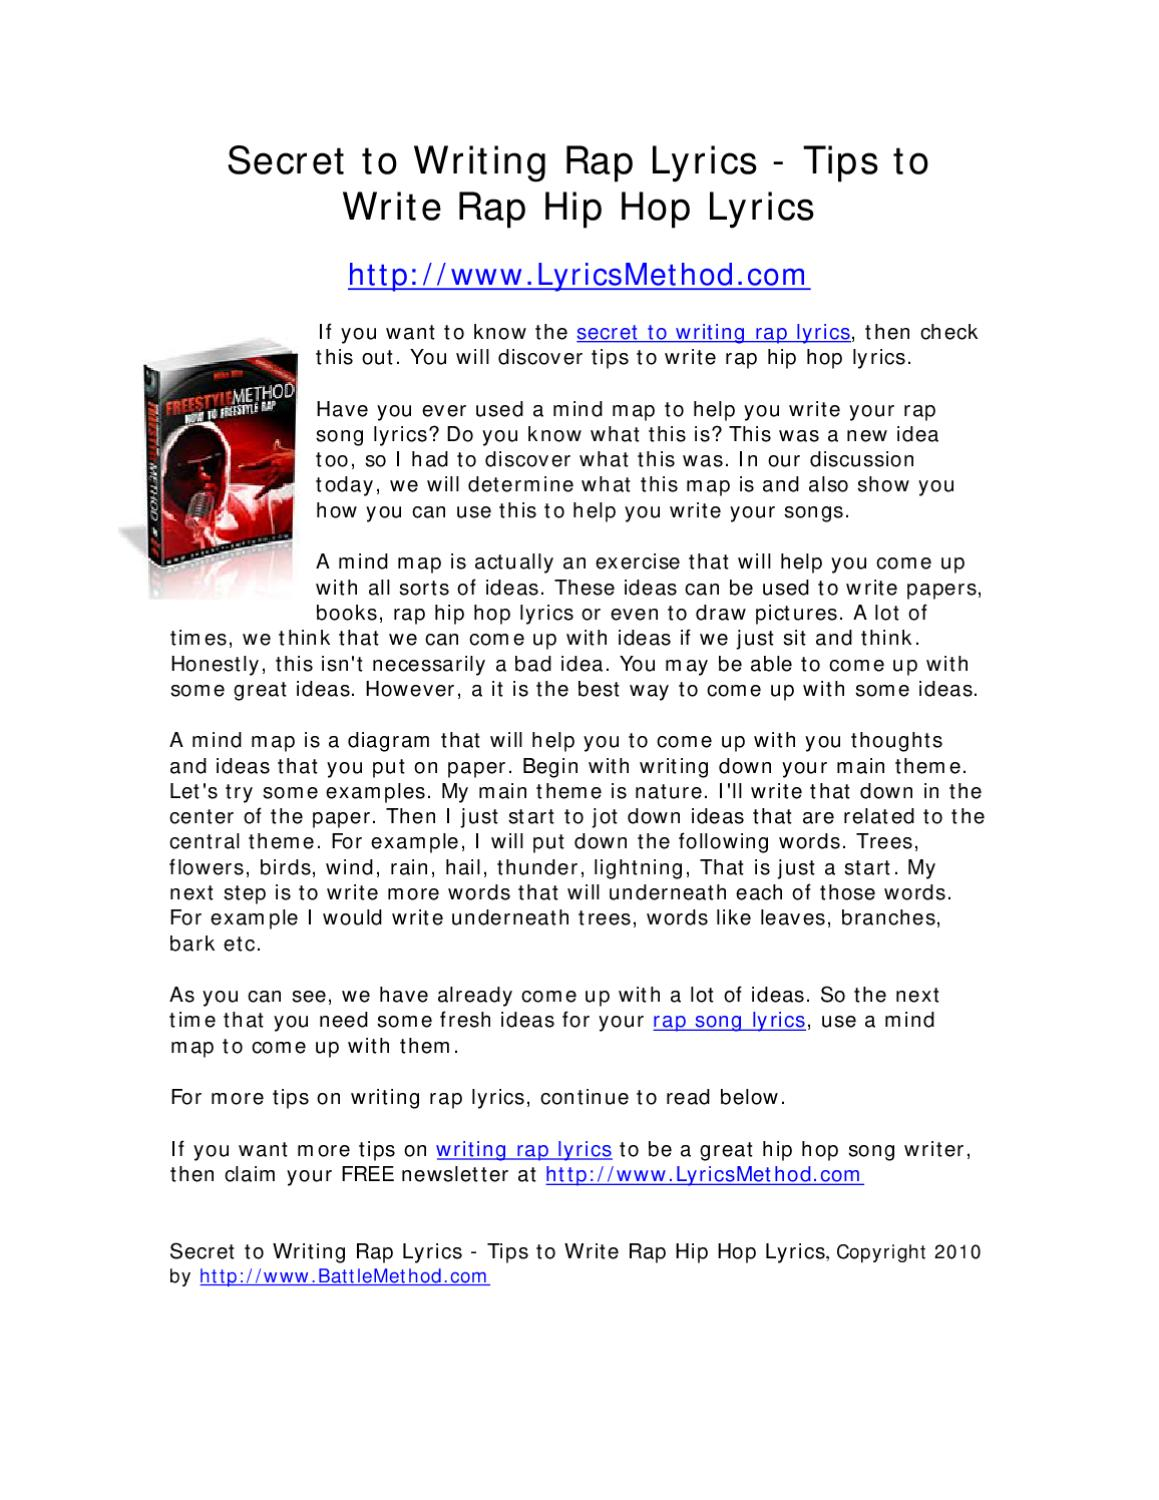 How to read rap